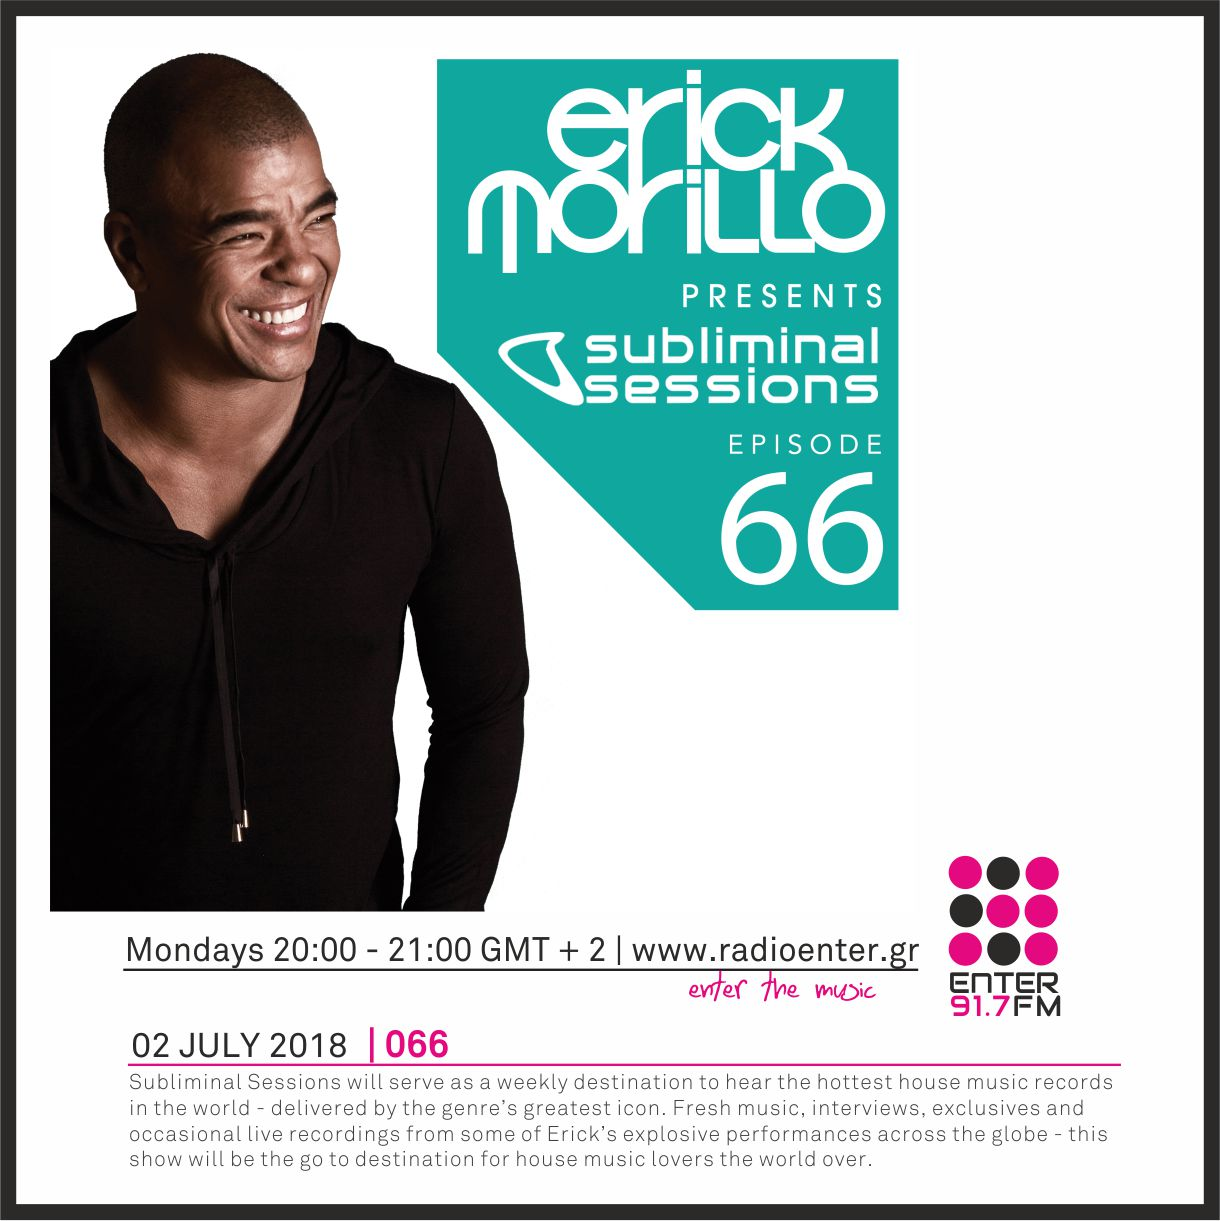 2018.07.02 - Erick Morillo 'Subliminal Sessions' 066